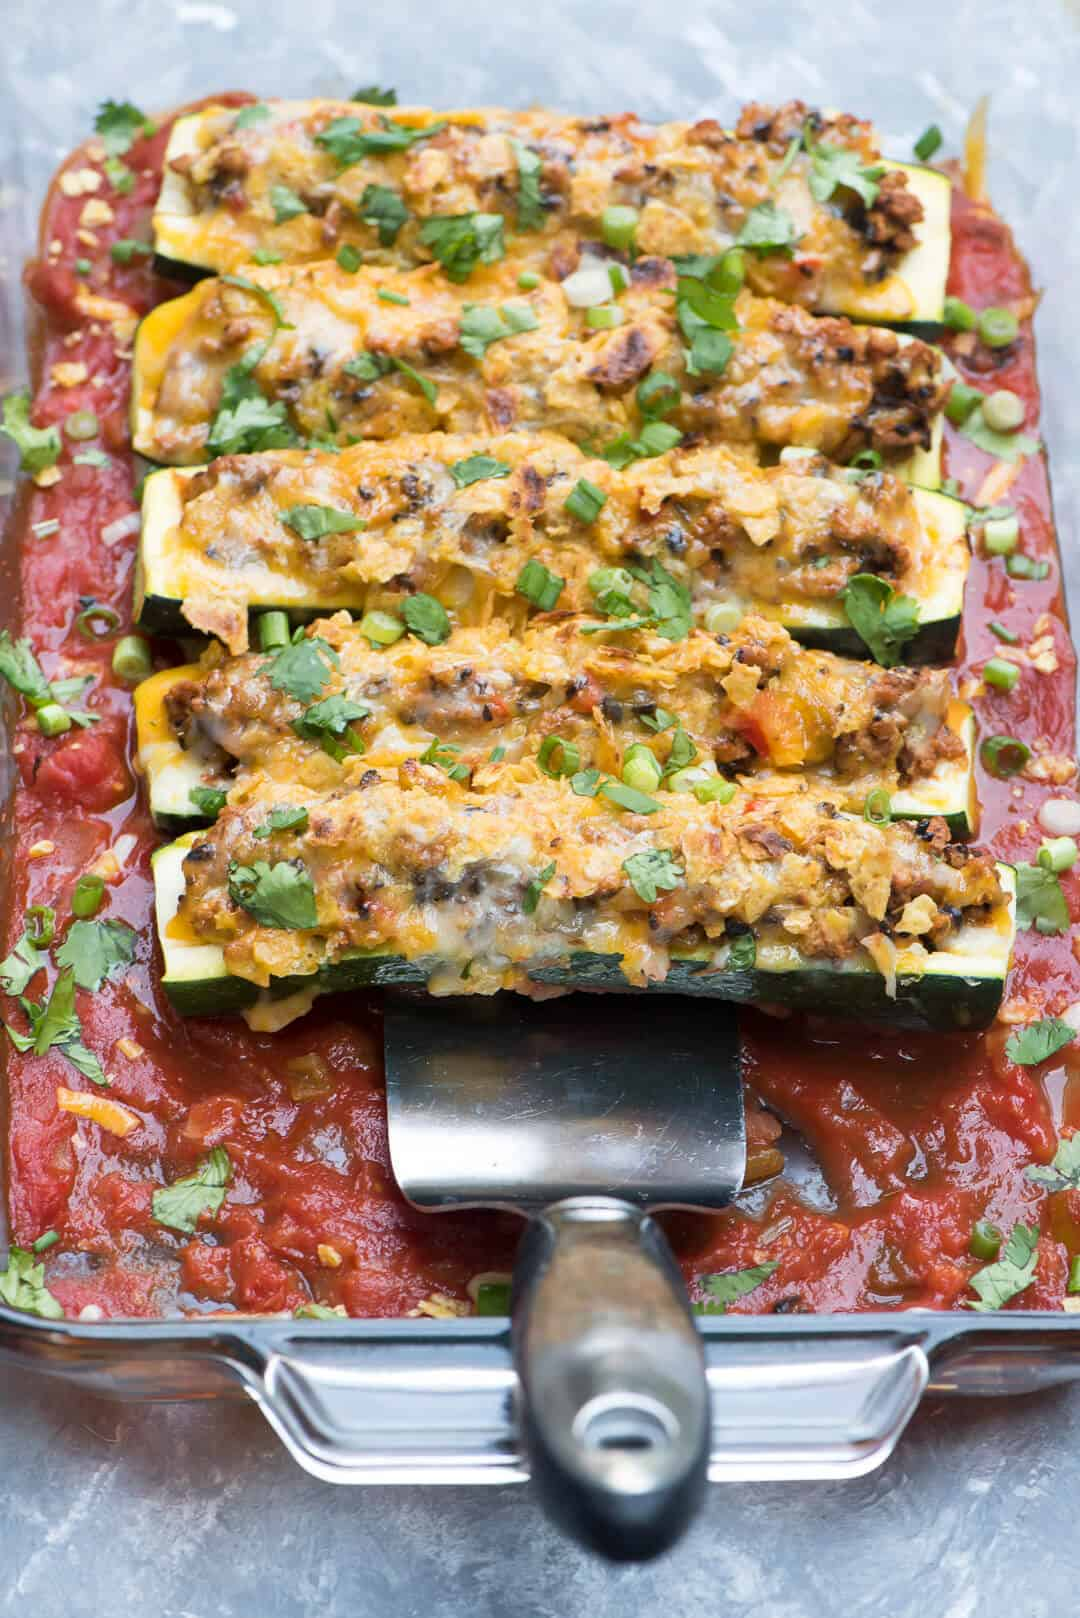 These Taco Stuffed Zucchini Boats are one of the most delicious things you can do with your summer zucchini. A wholesome, family-friendly dinner idea.